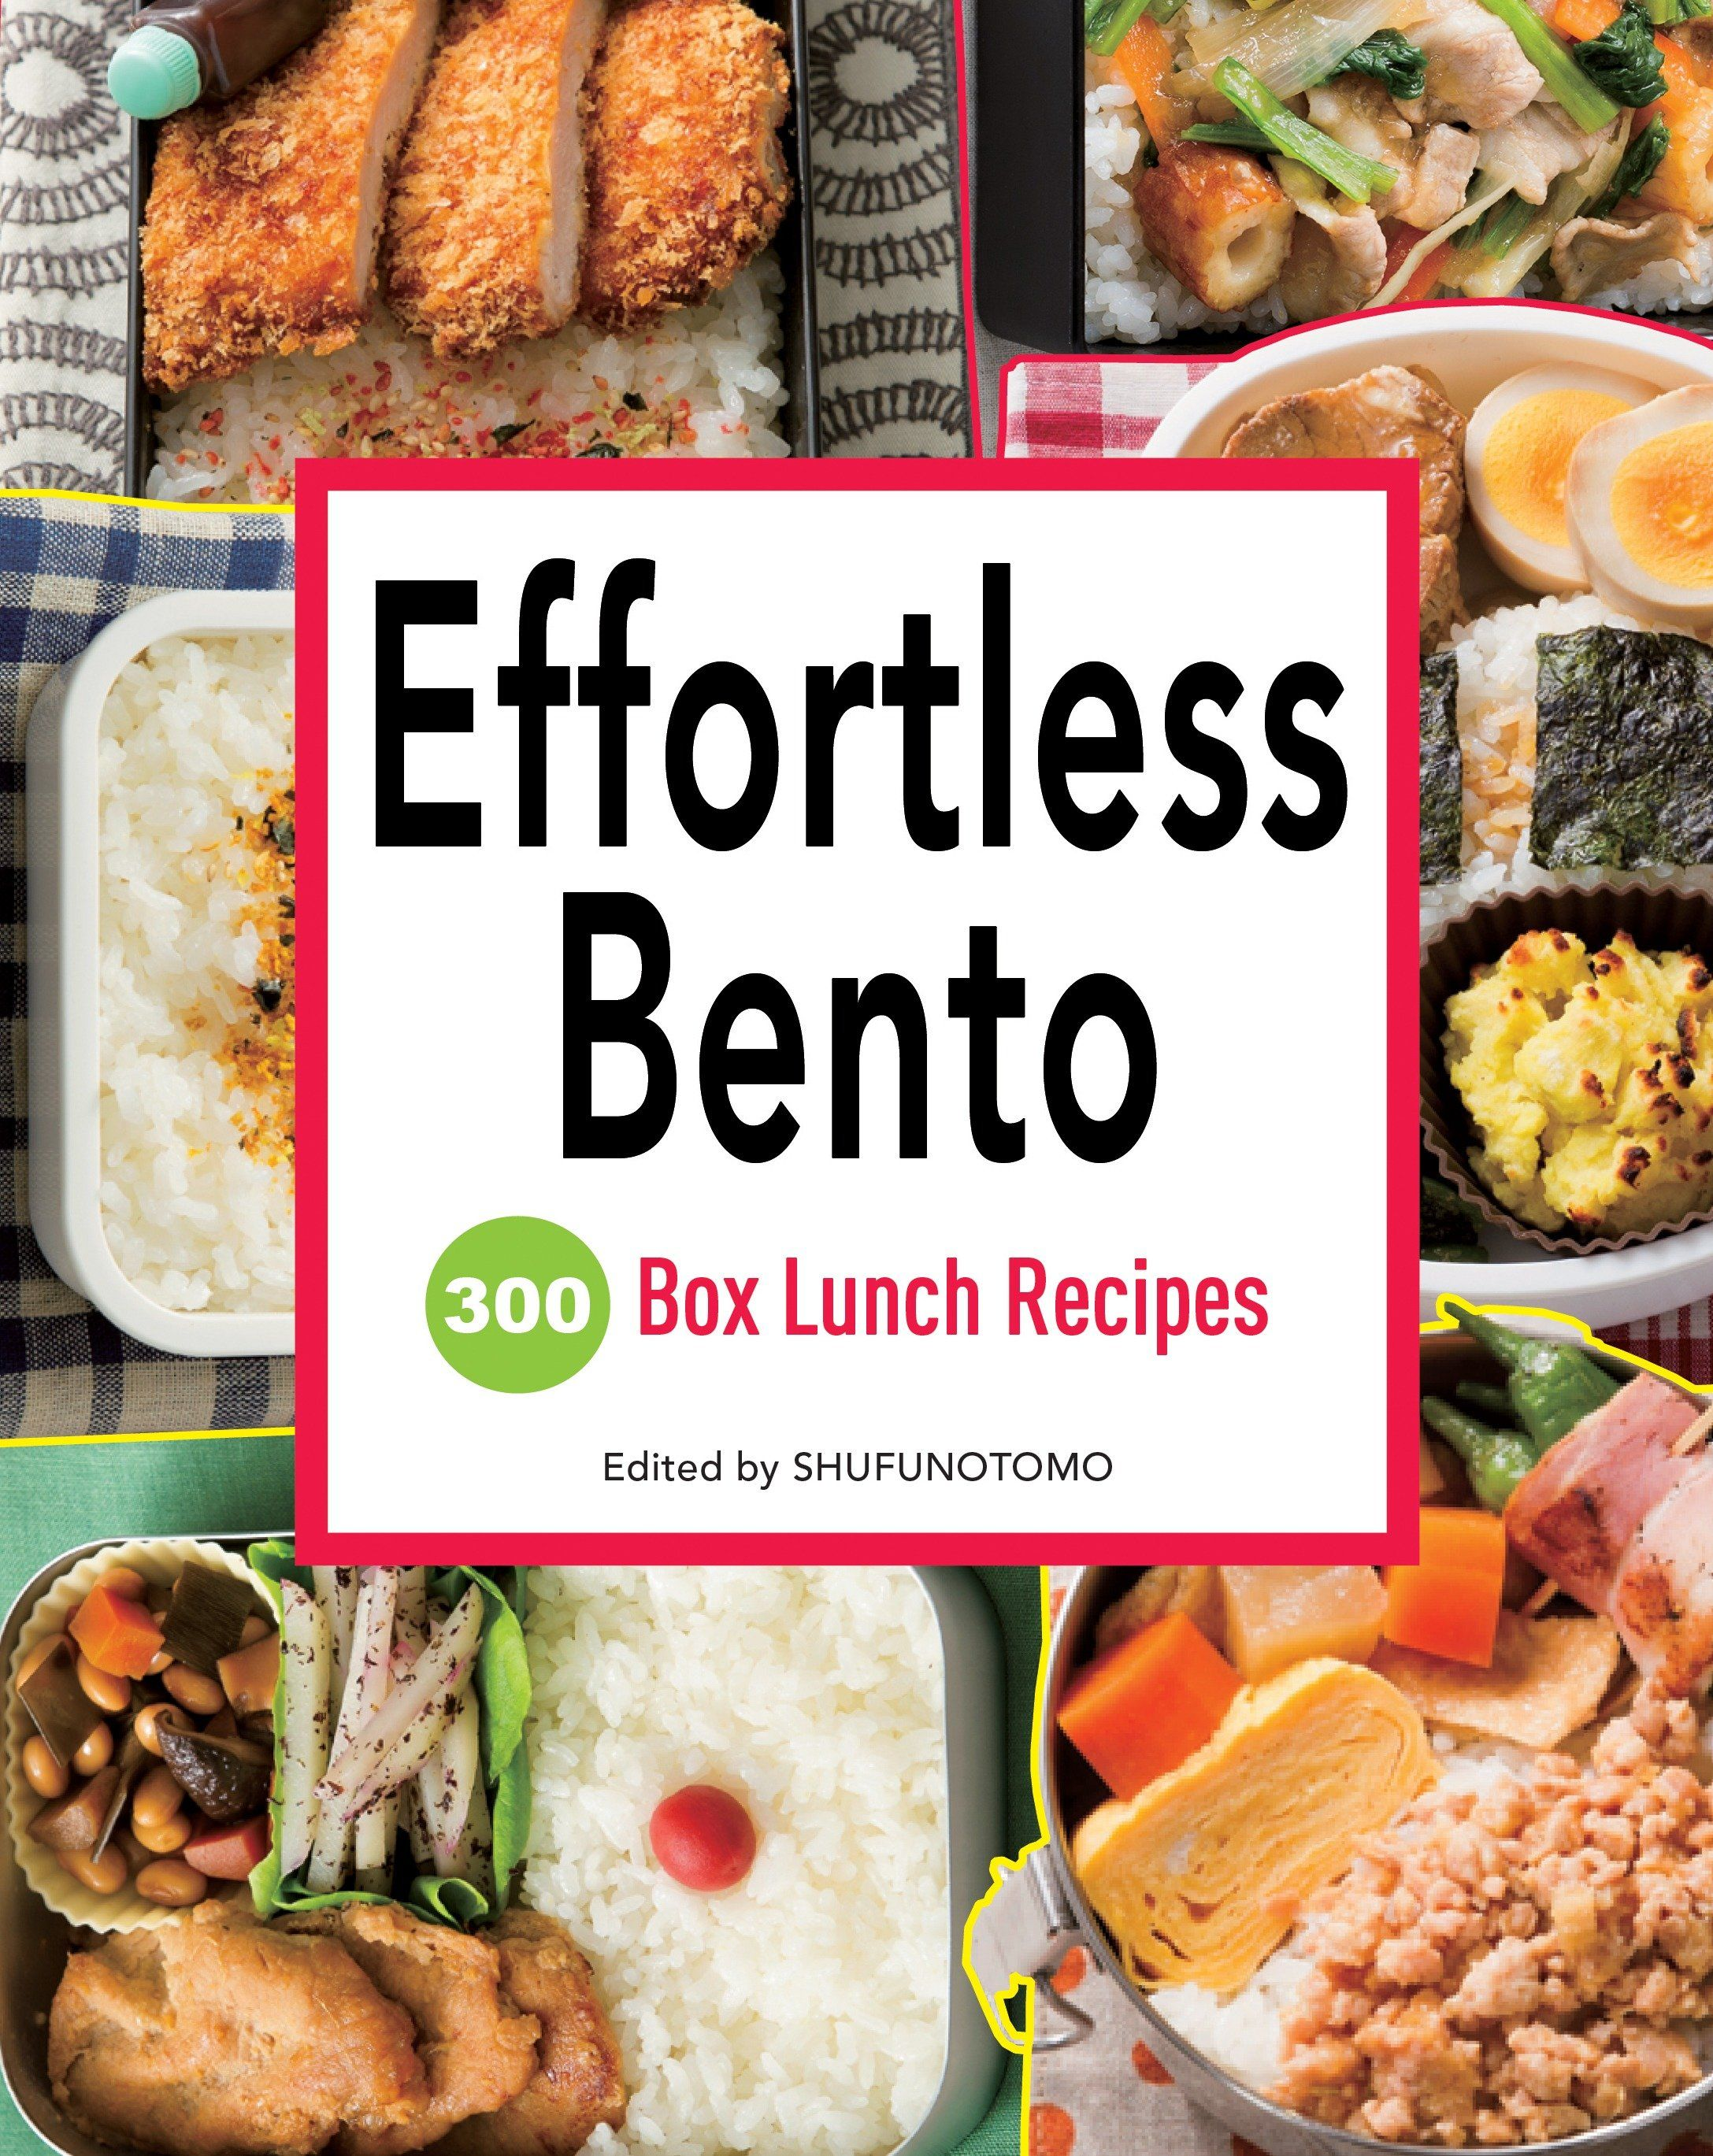 Effortless Bento 300 Box Lunch Recipes Paperback Walmart Com Recipes Lunch Recipes Asian Recipes